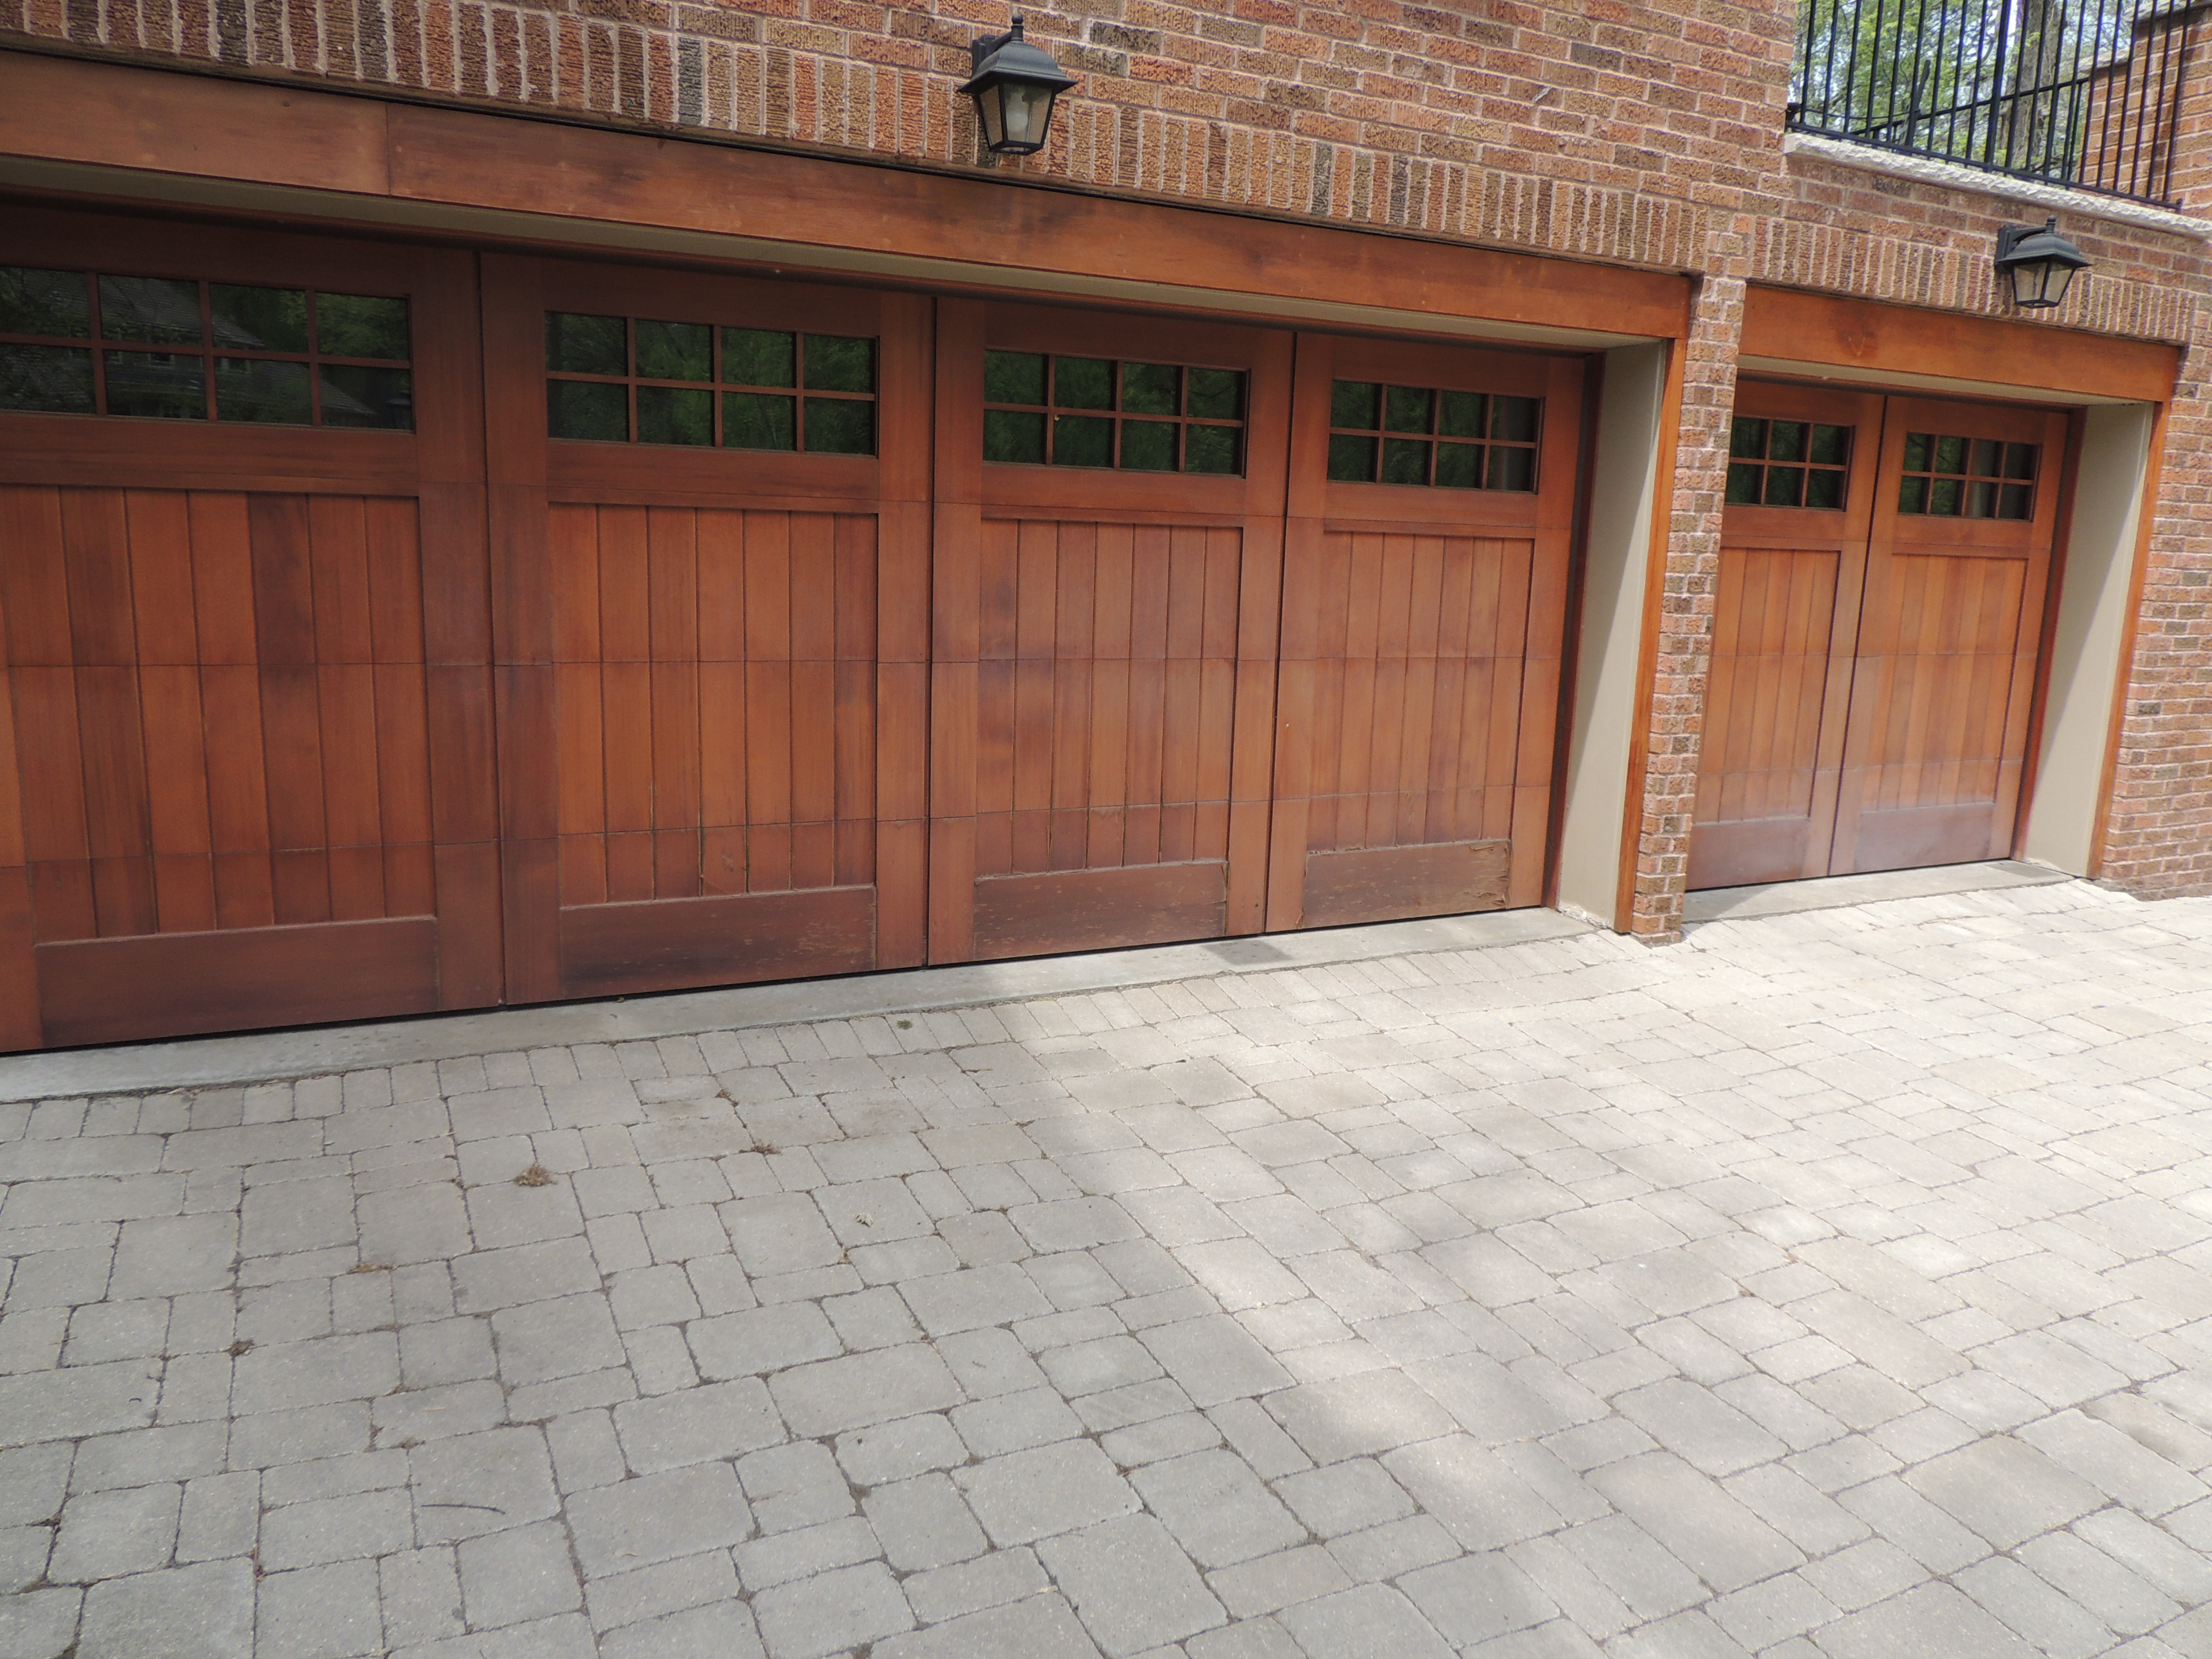 Level 4 Garage Door Refinish - Painterati on door to closet, door to root cellar, door to school, door to library, door to equipment room, door to porch, door to gym, door to wall, door to sunroom, door to yard, door to bedroom, door to church, door to safe room, door to office, door to door, door to pantry, door to mechanical room, door to restaurant, door to auditorium, door to shed,